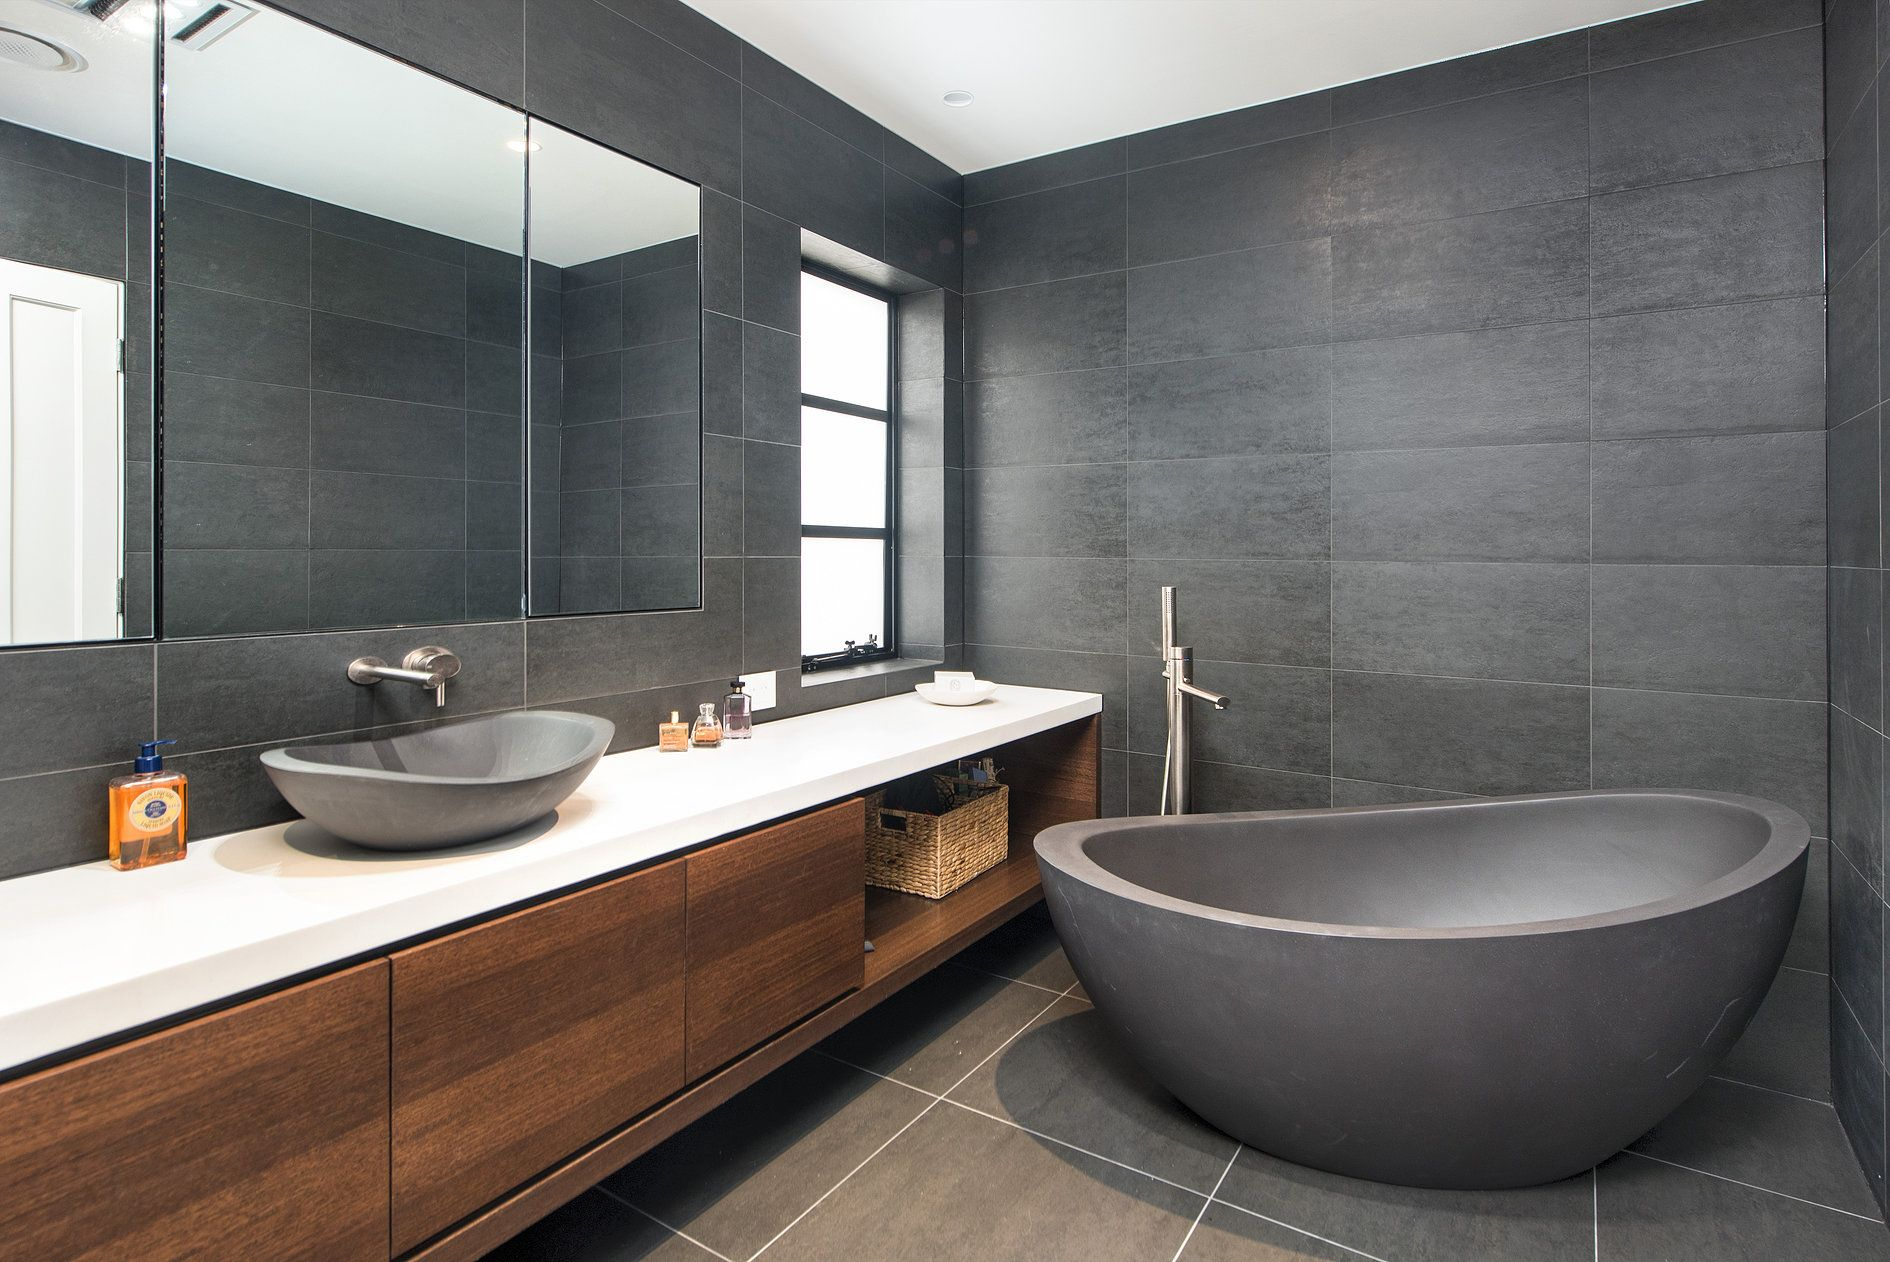 simply bathroom solutions offers bathroom designs on bathroom renovation ideas melbourne id=20101